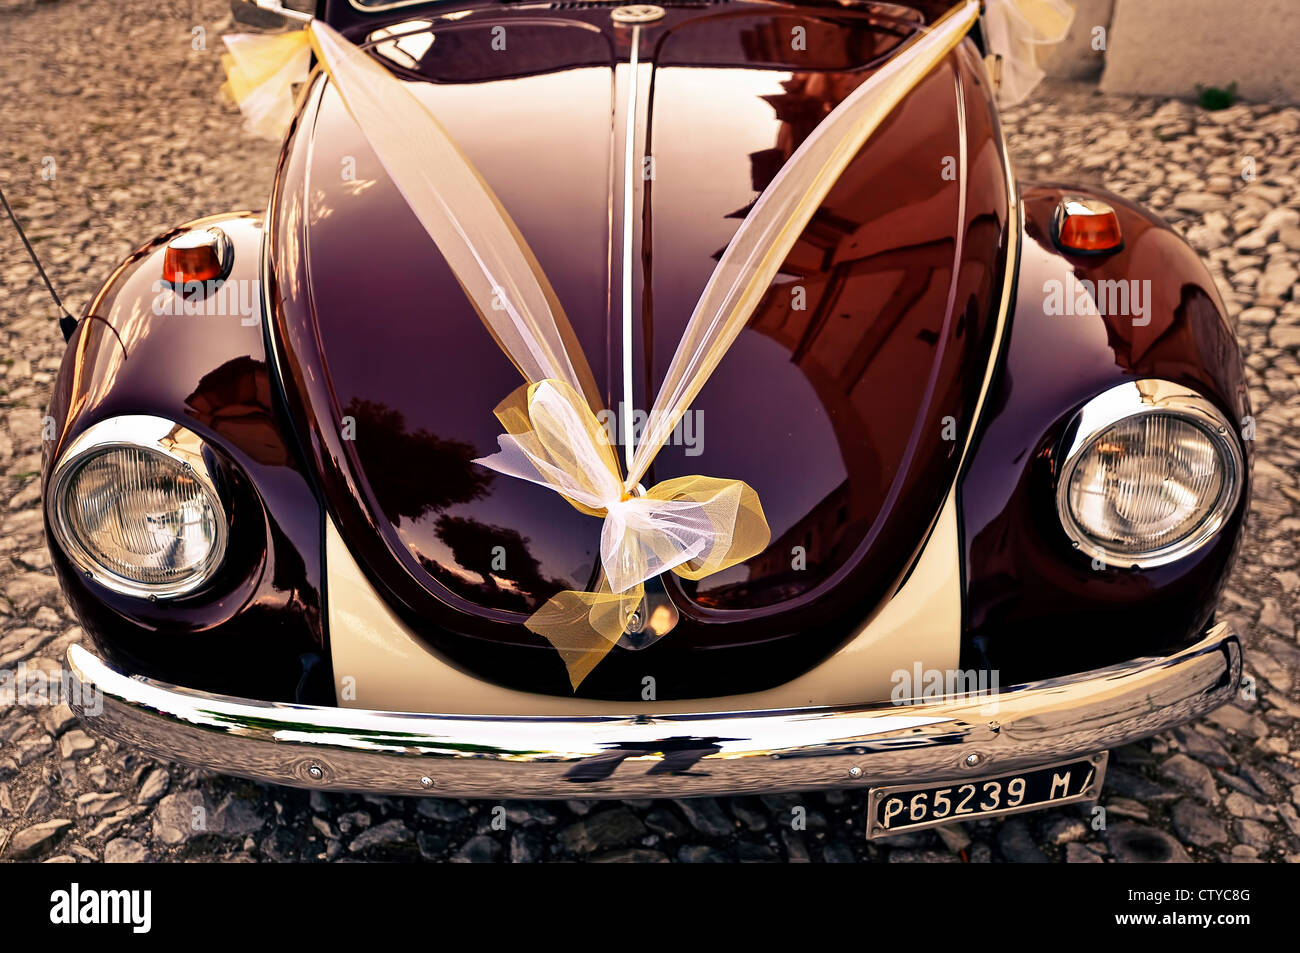 vintage volkswagen beetle with a drape on the bonnet - Stock Image